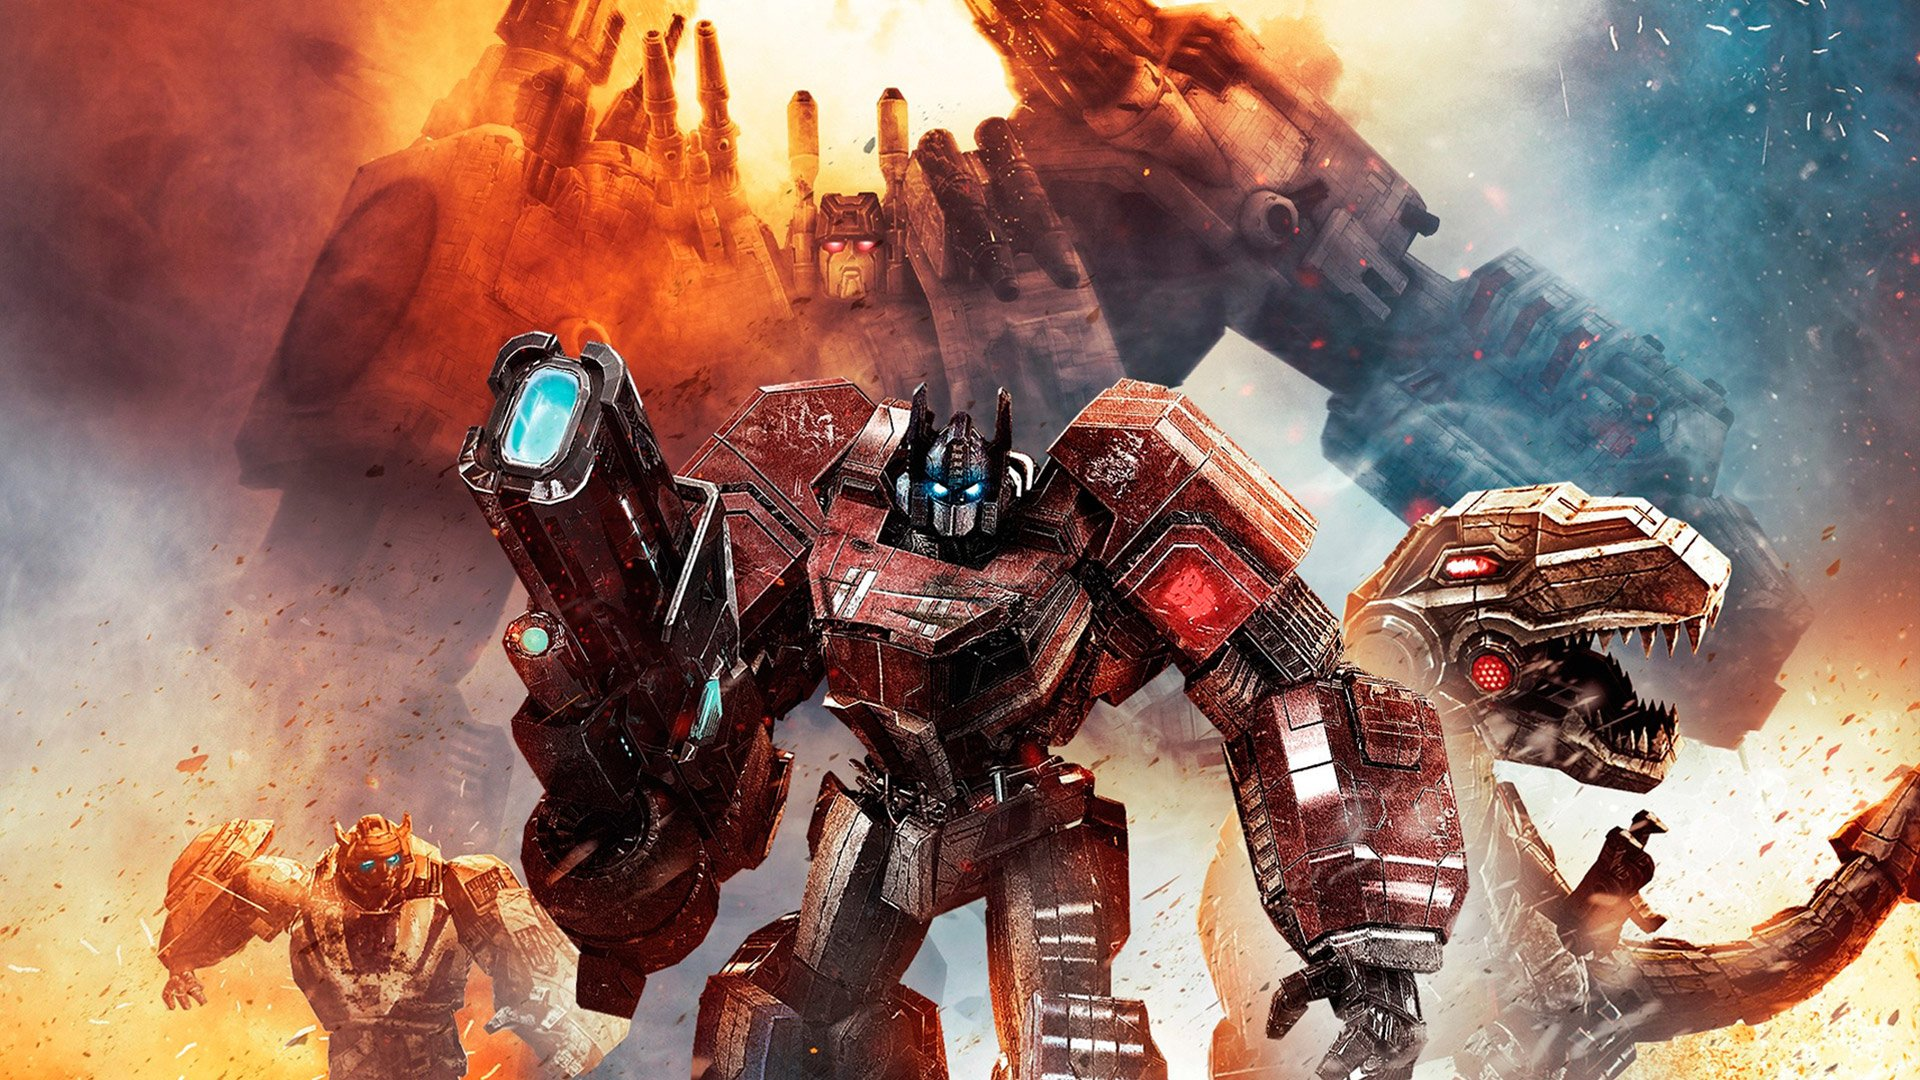 Transformers Fall Of Cybertron Wallpaper 1920x1080 Transformers Fall Of Cybertron Full Hd Wallpaper And